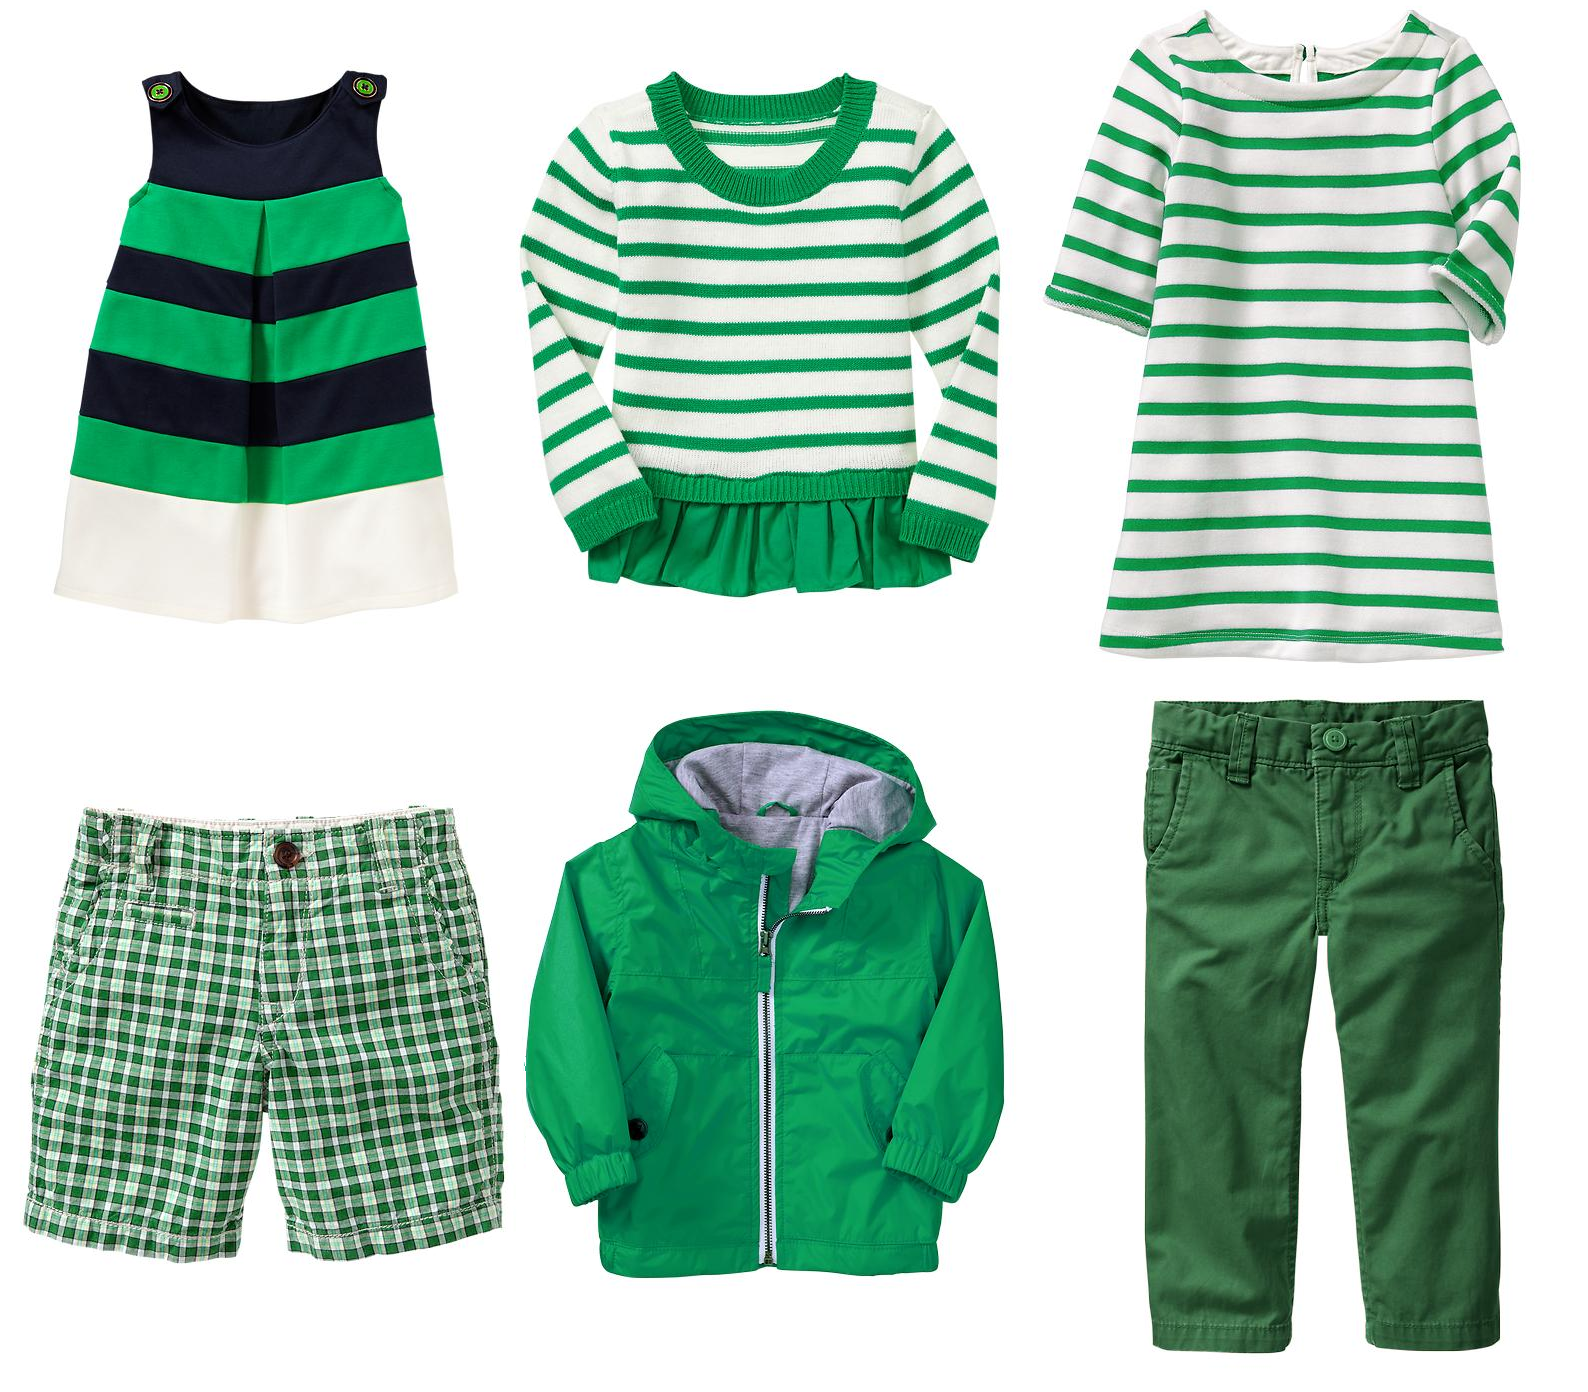 Green dress baby images  Dress up your little leprechaun in shamrock green from Baby Gap this